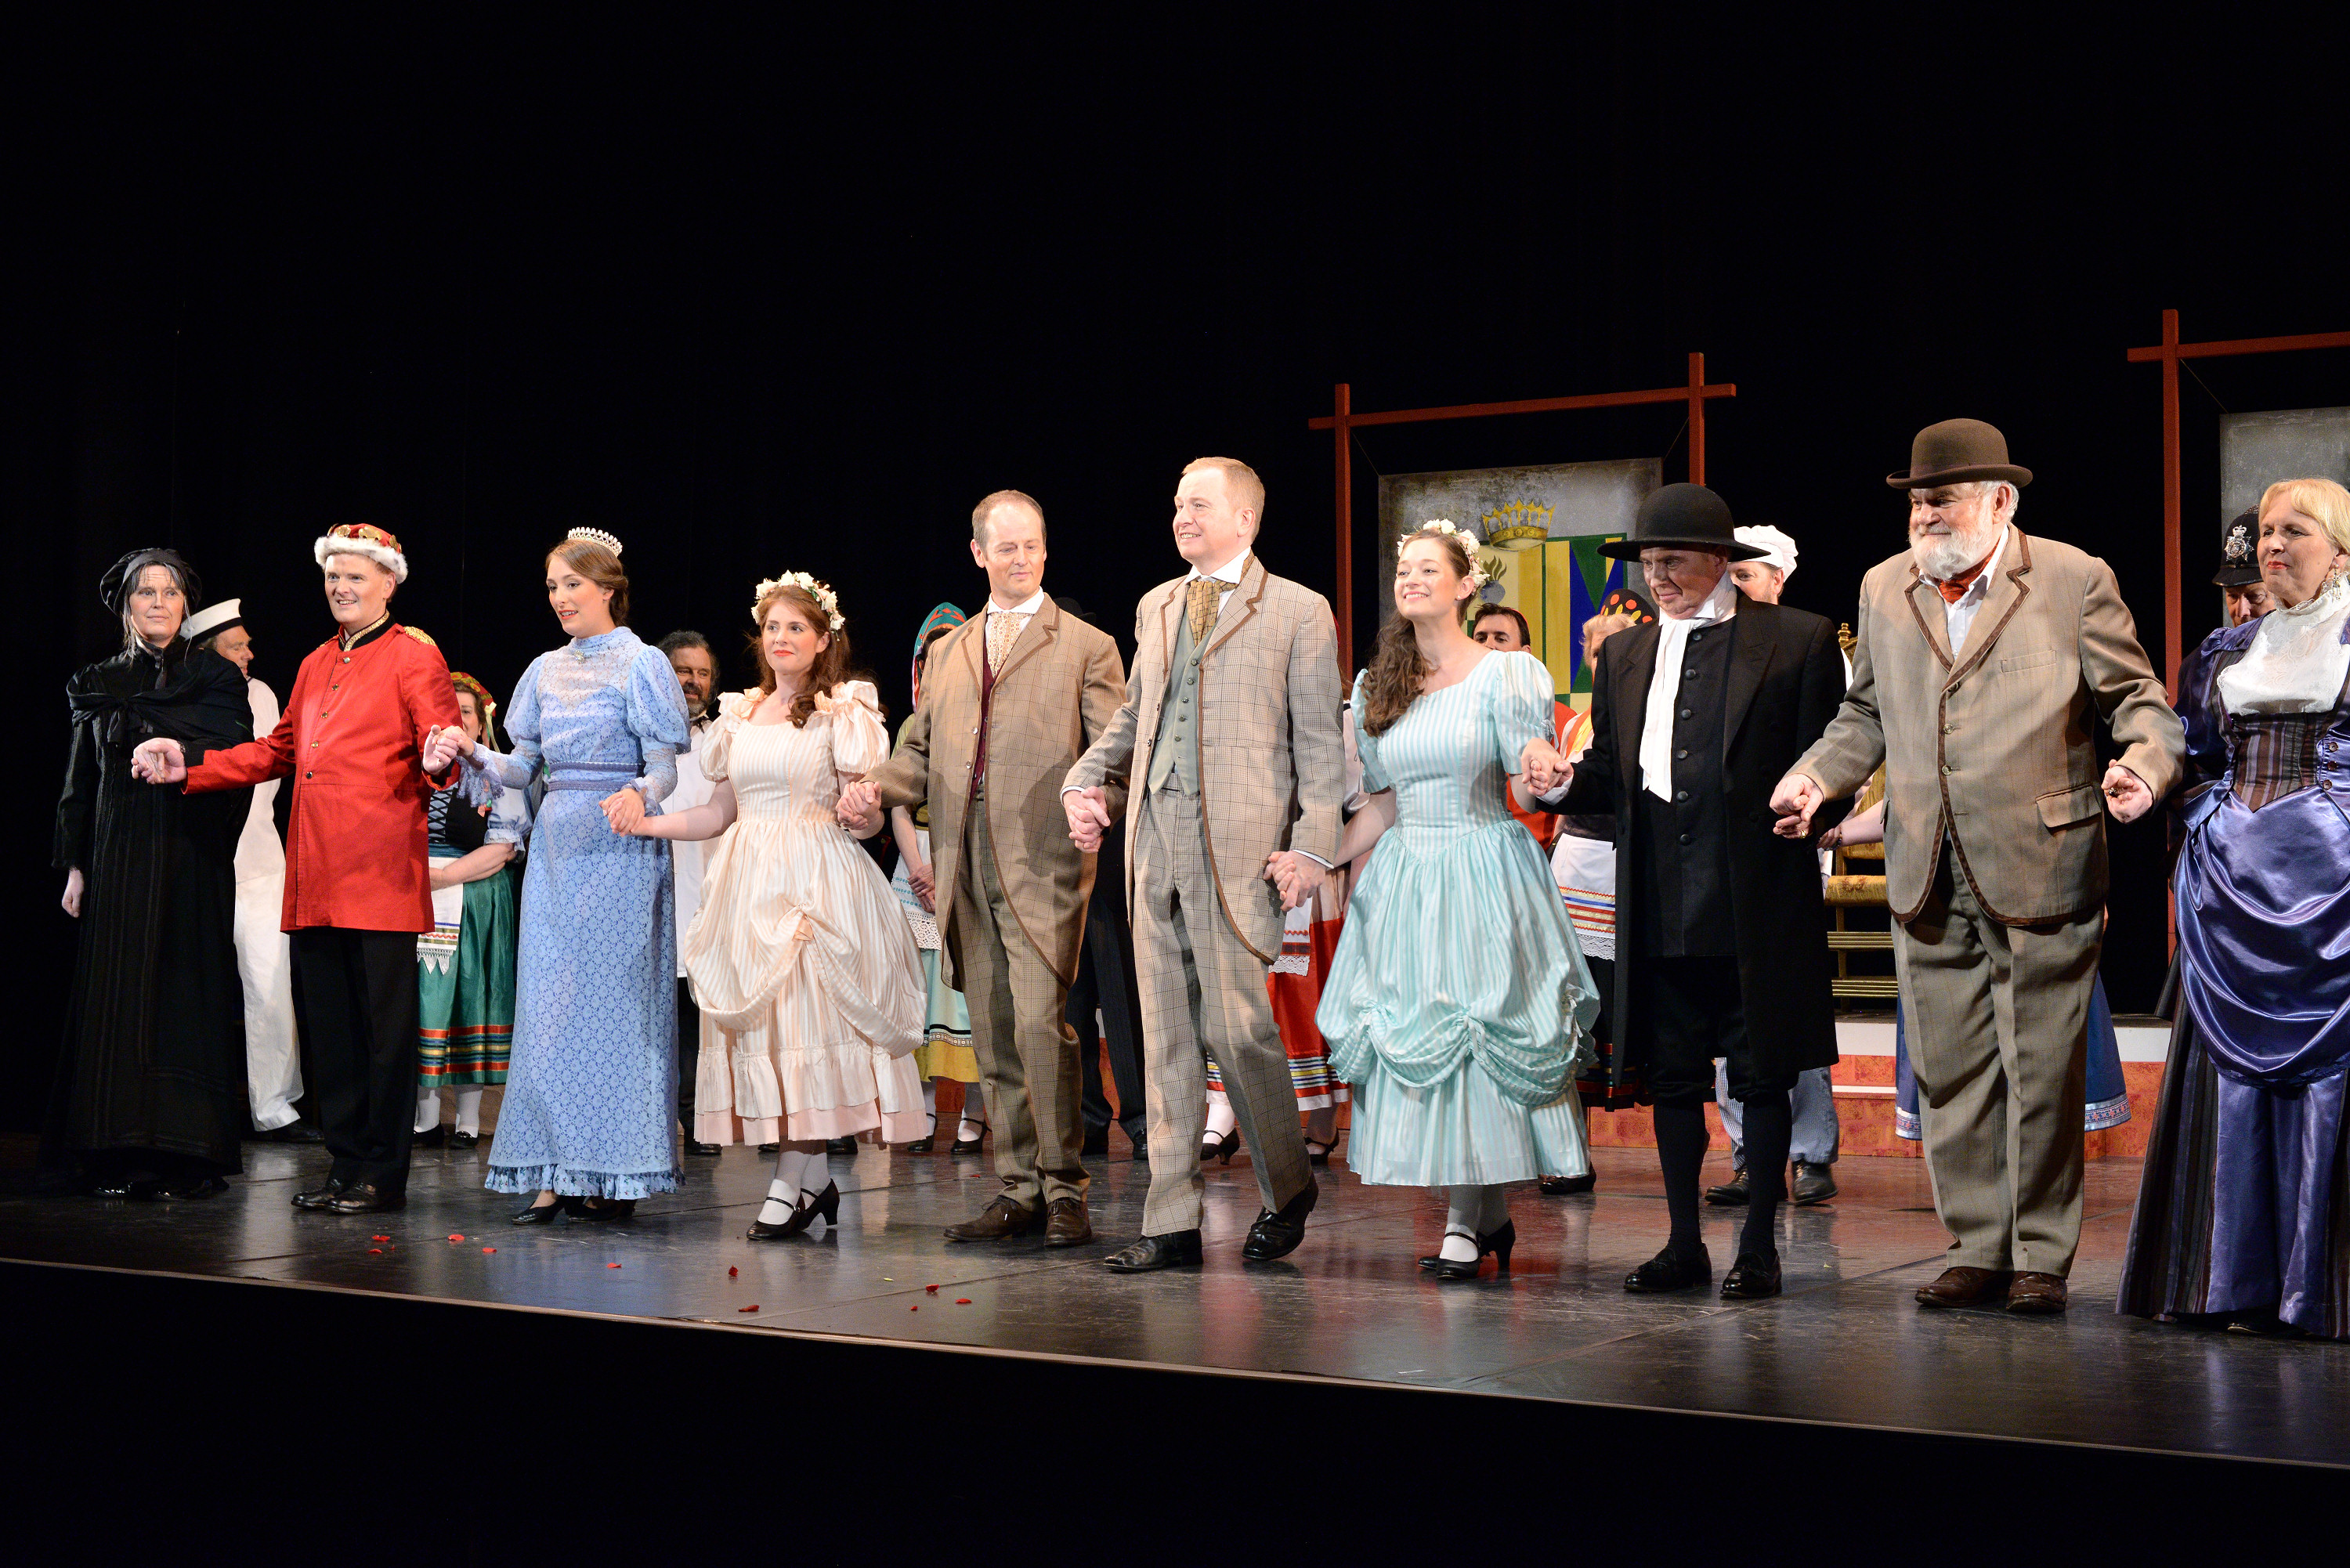 Curtain Bow: The Gondoliers